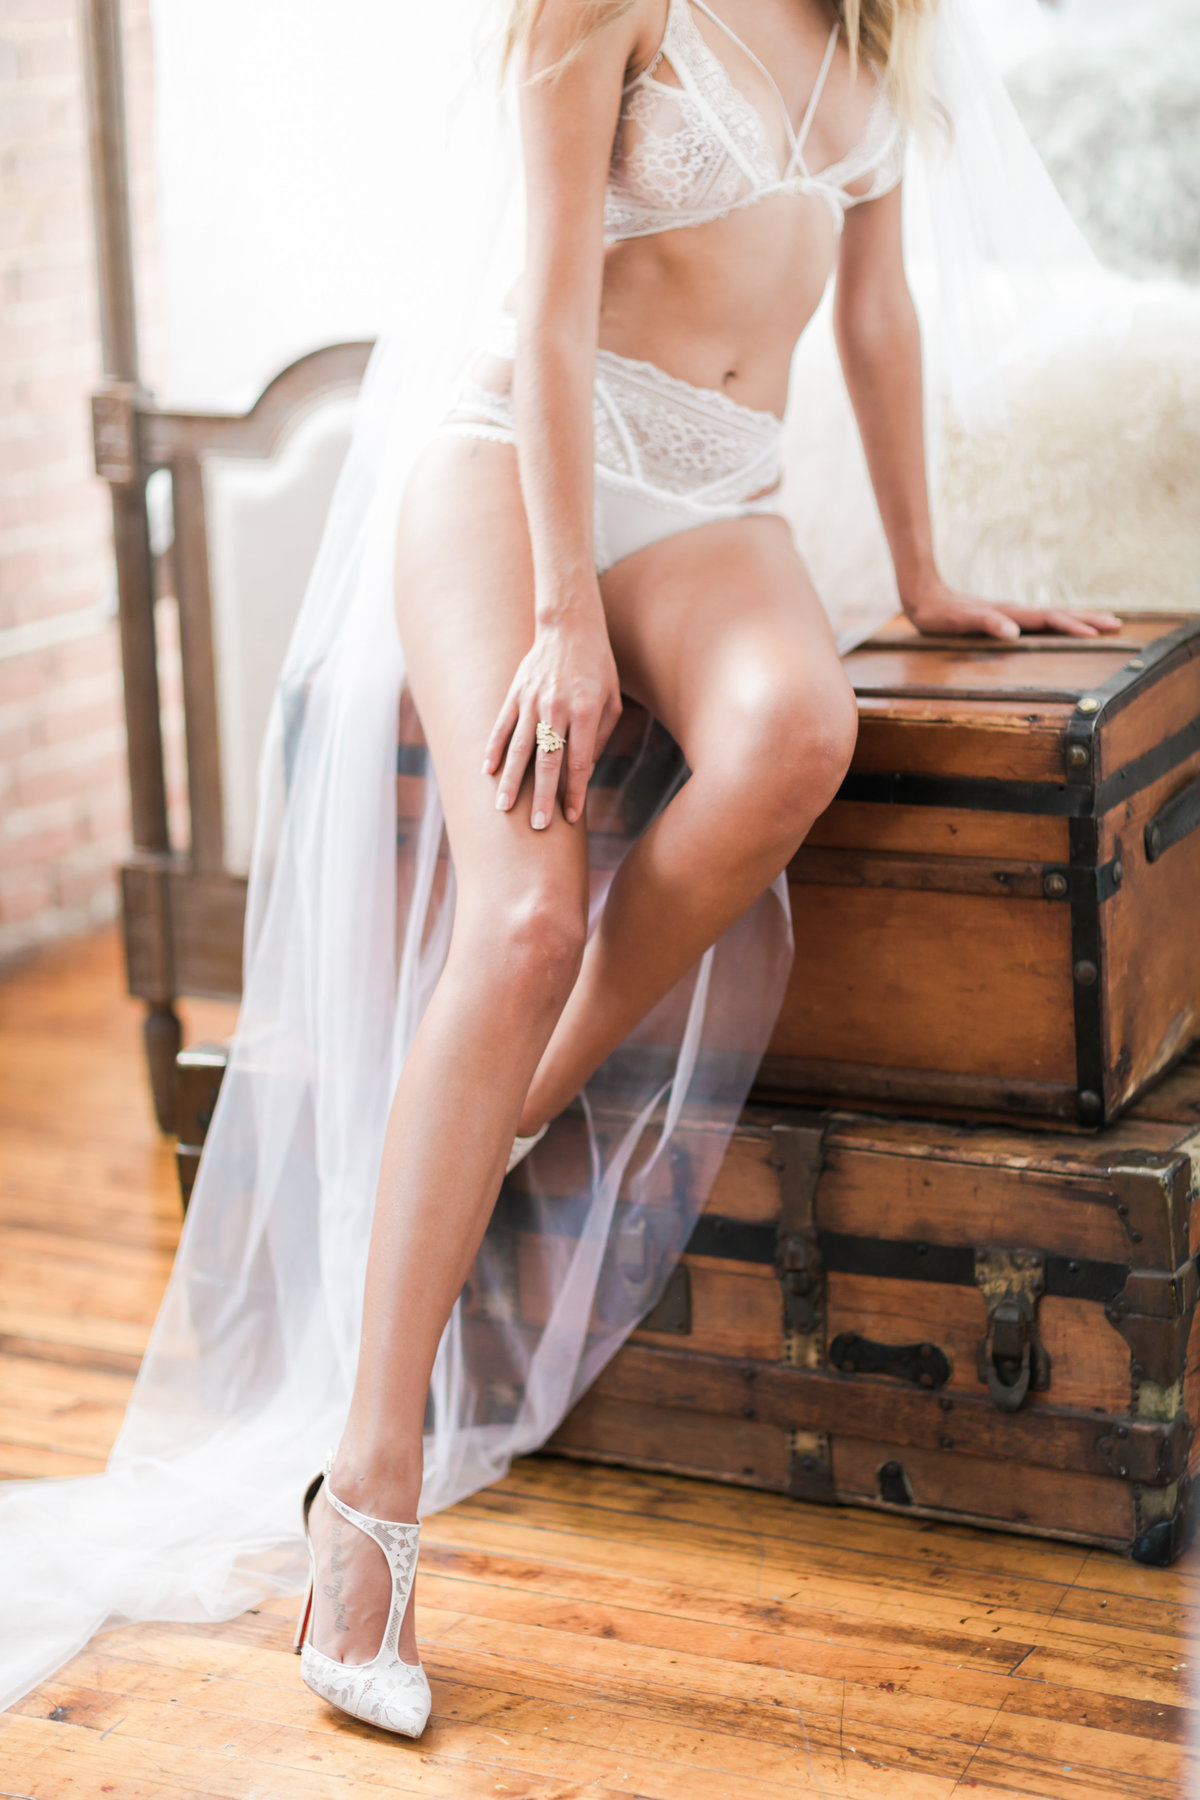 Lingerie Bridal Boudoir_Valorie Darling Photography-2-13